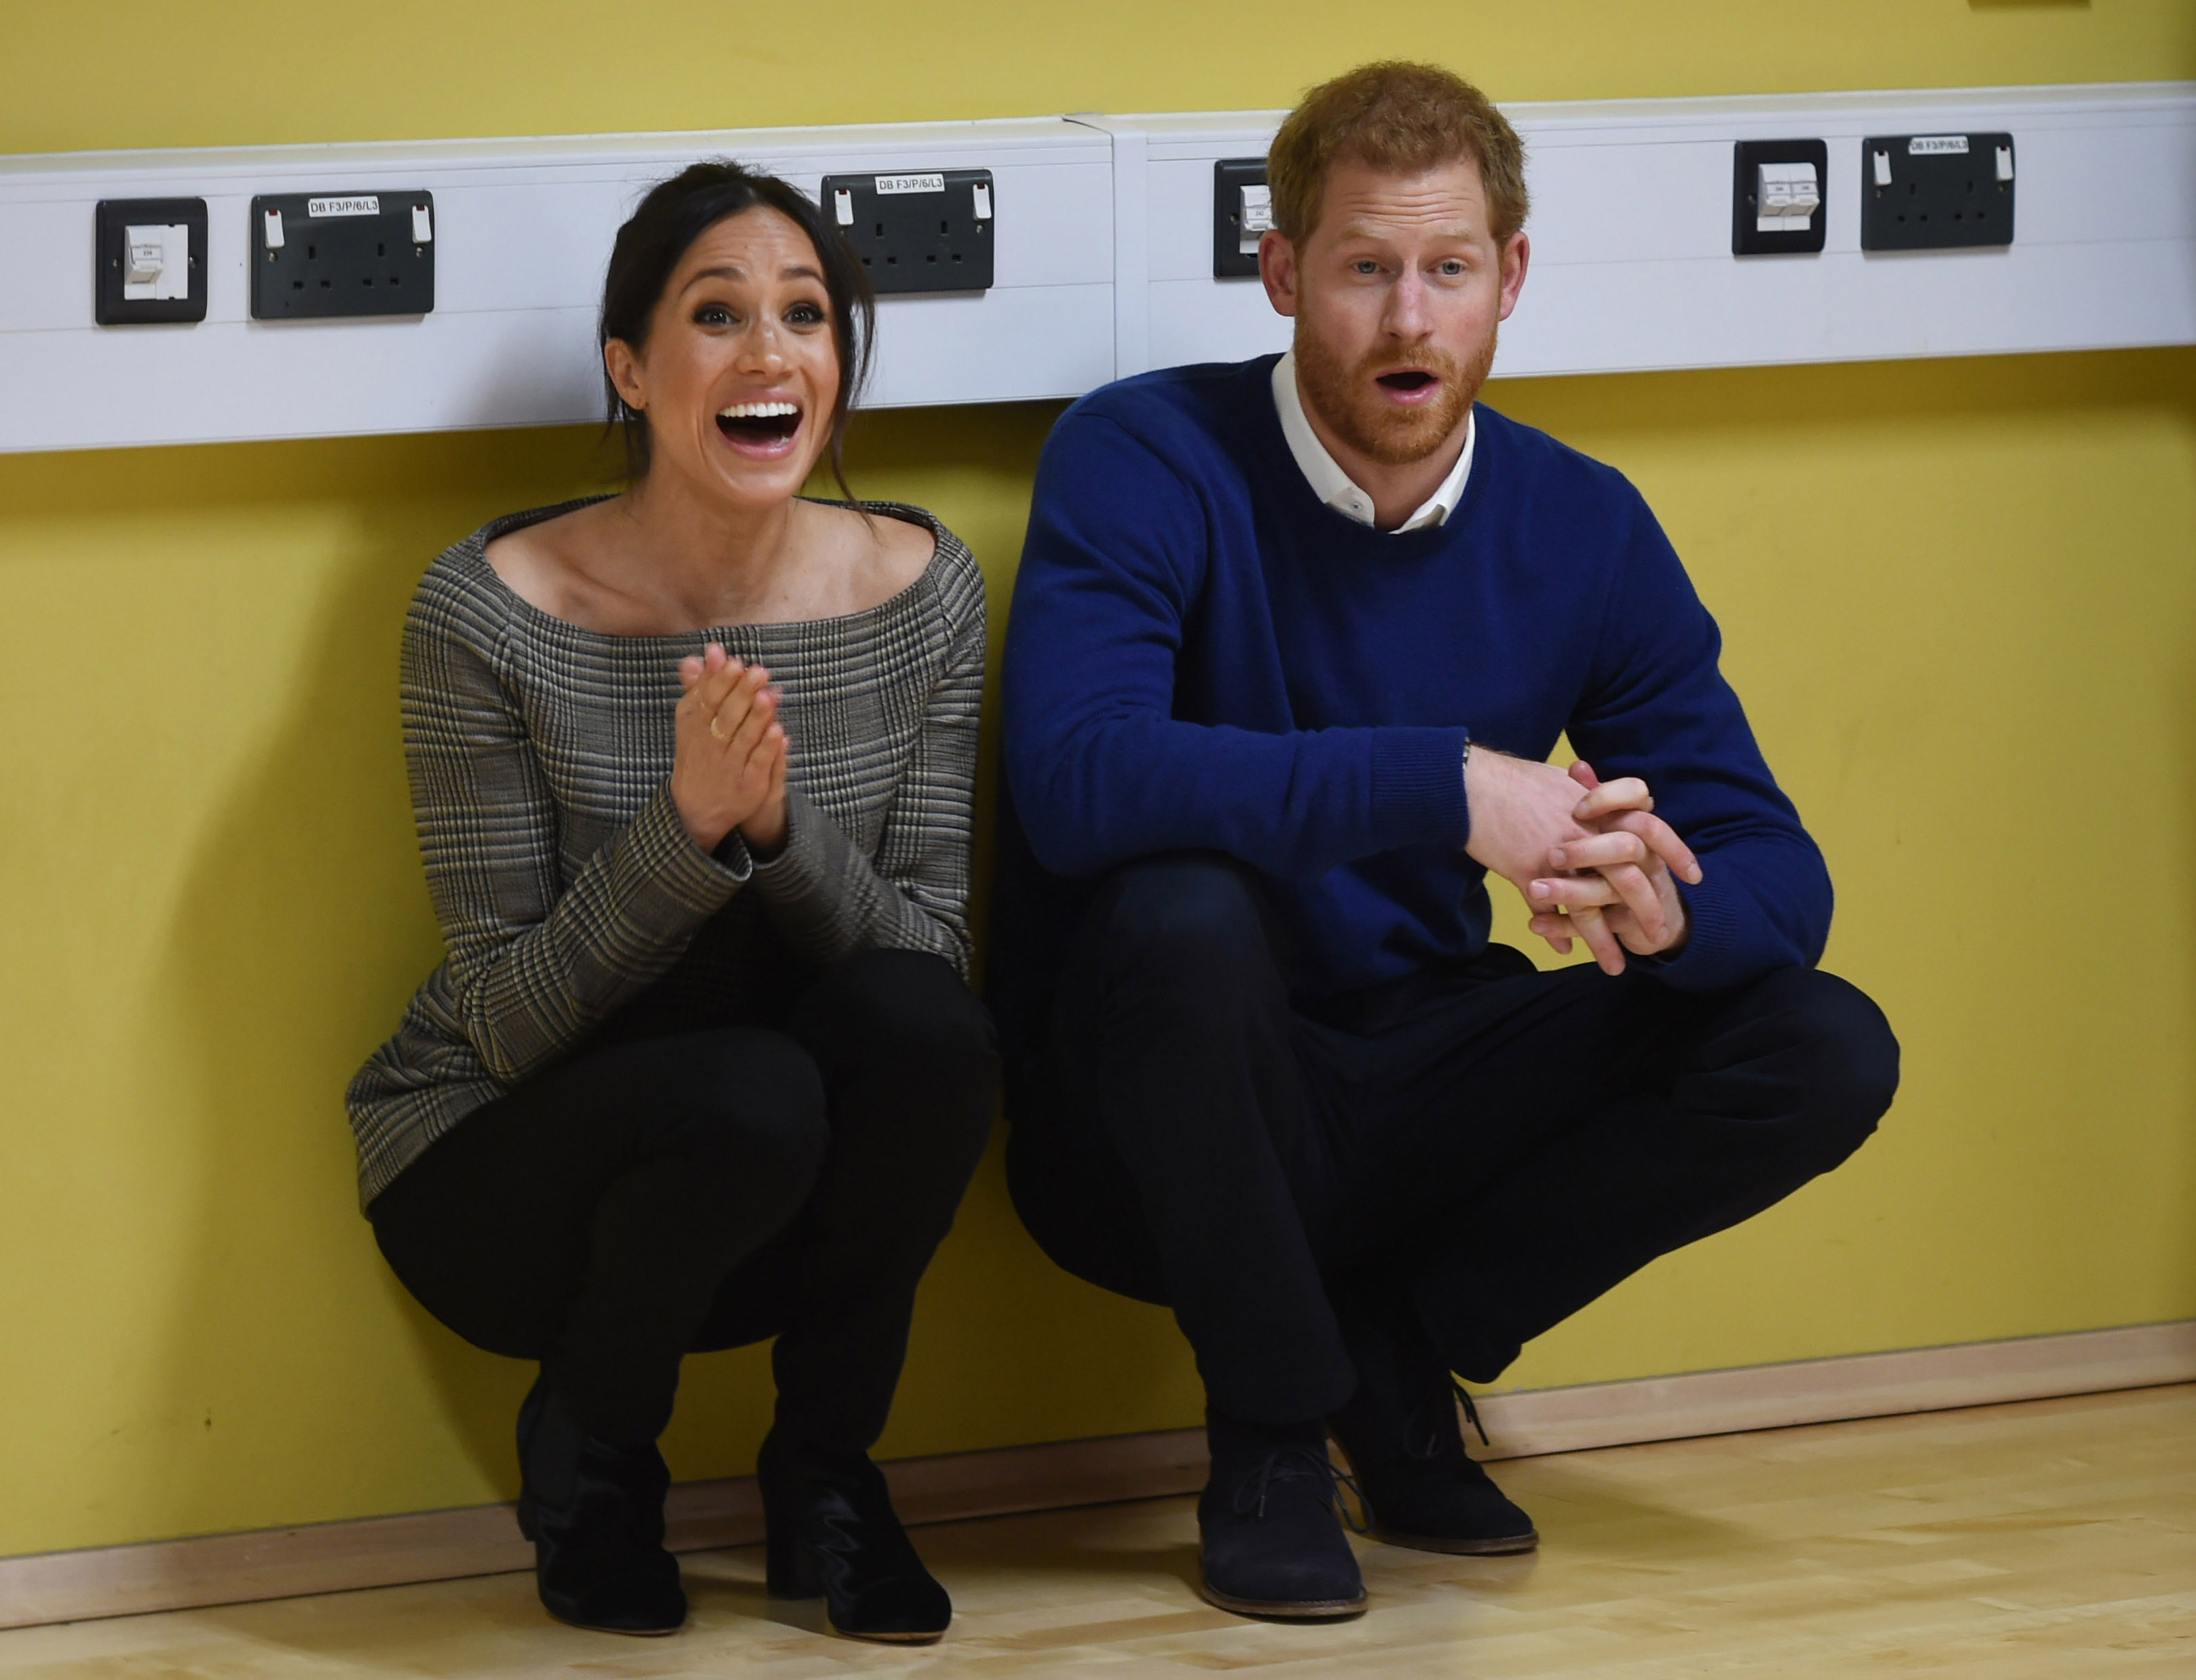 Harry and Meghan laughing together